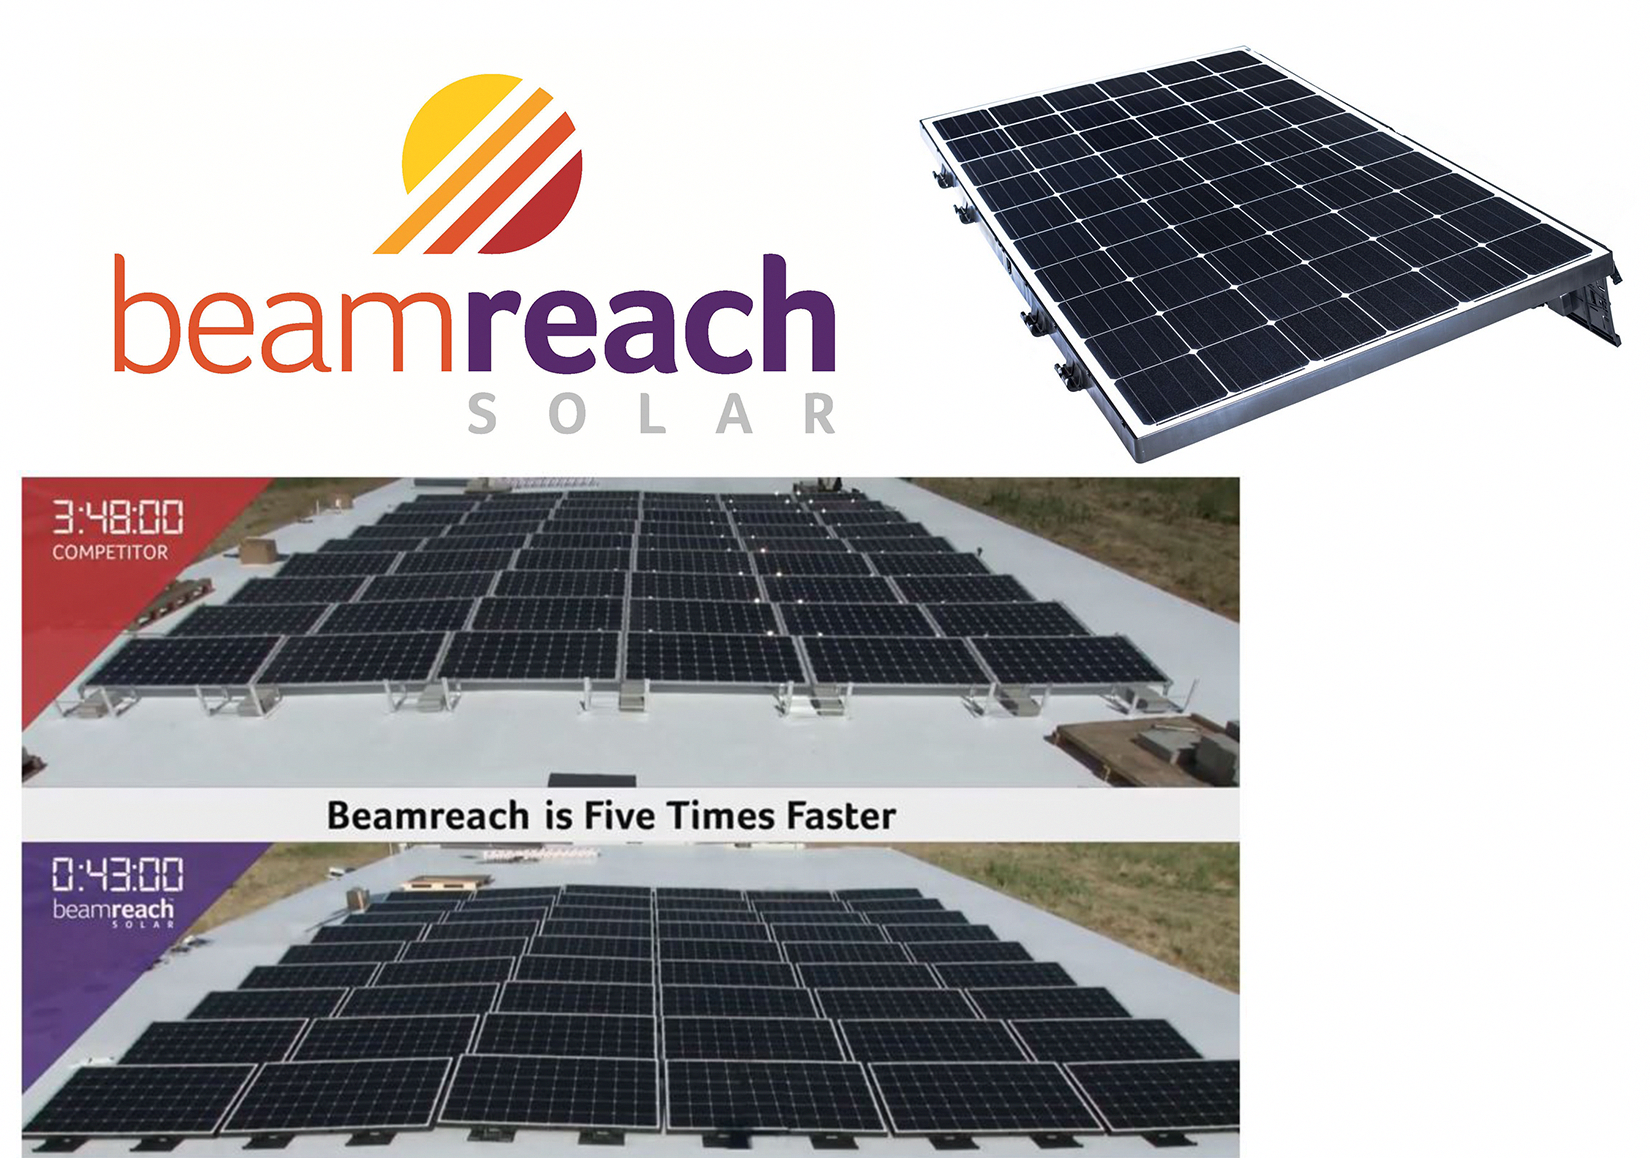 Solar Panels Pv Systems Inverters Batteries And All Bos At The World S Lowest Prices Suniva Trina Kyocera Solar In 2020 Solar Energy Panels Solar Solar Panels